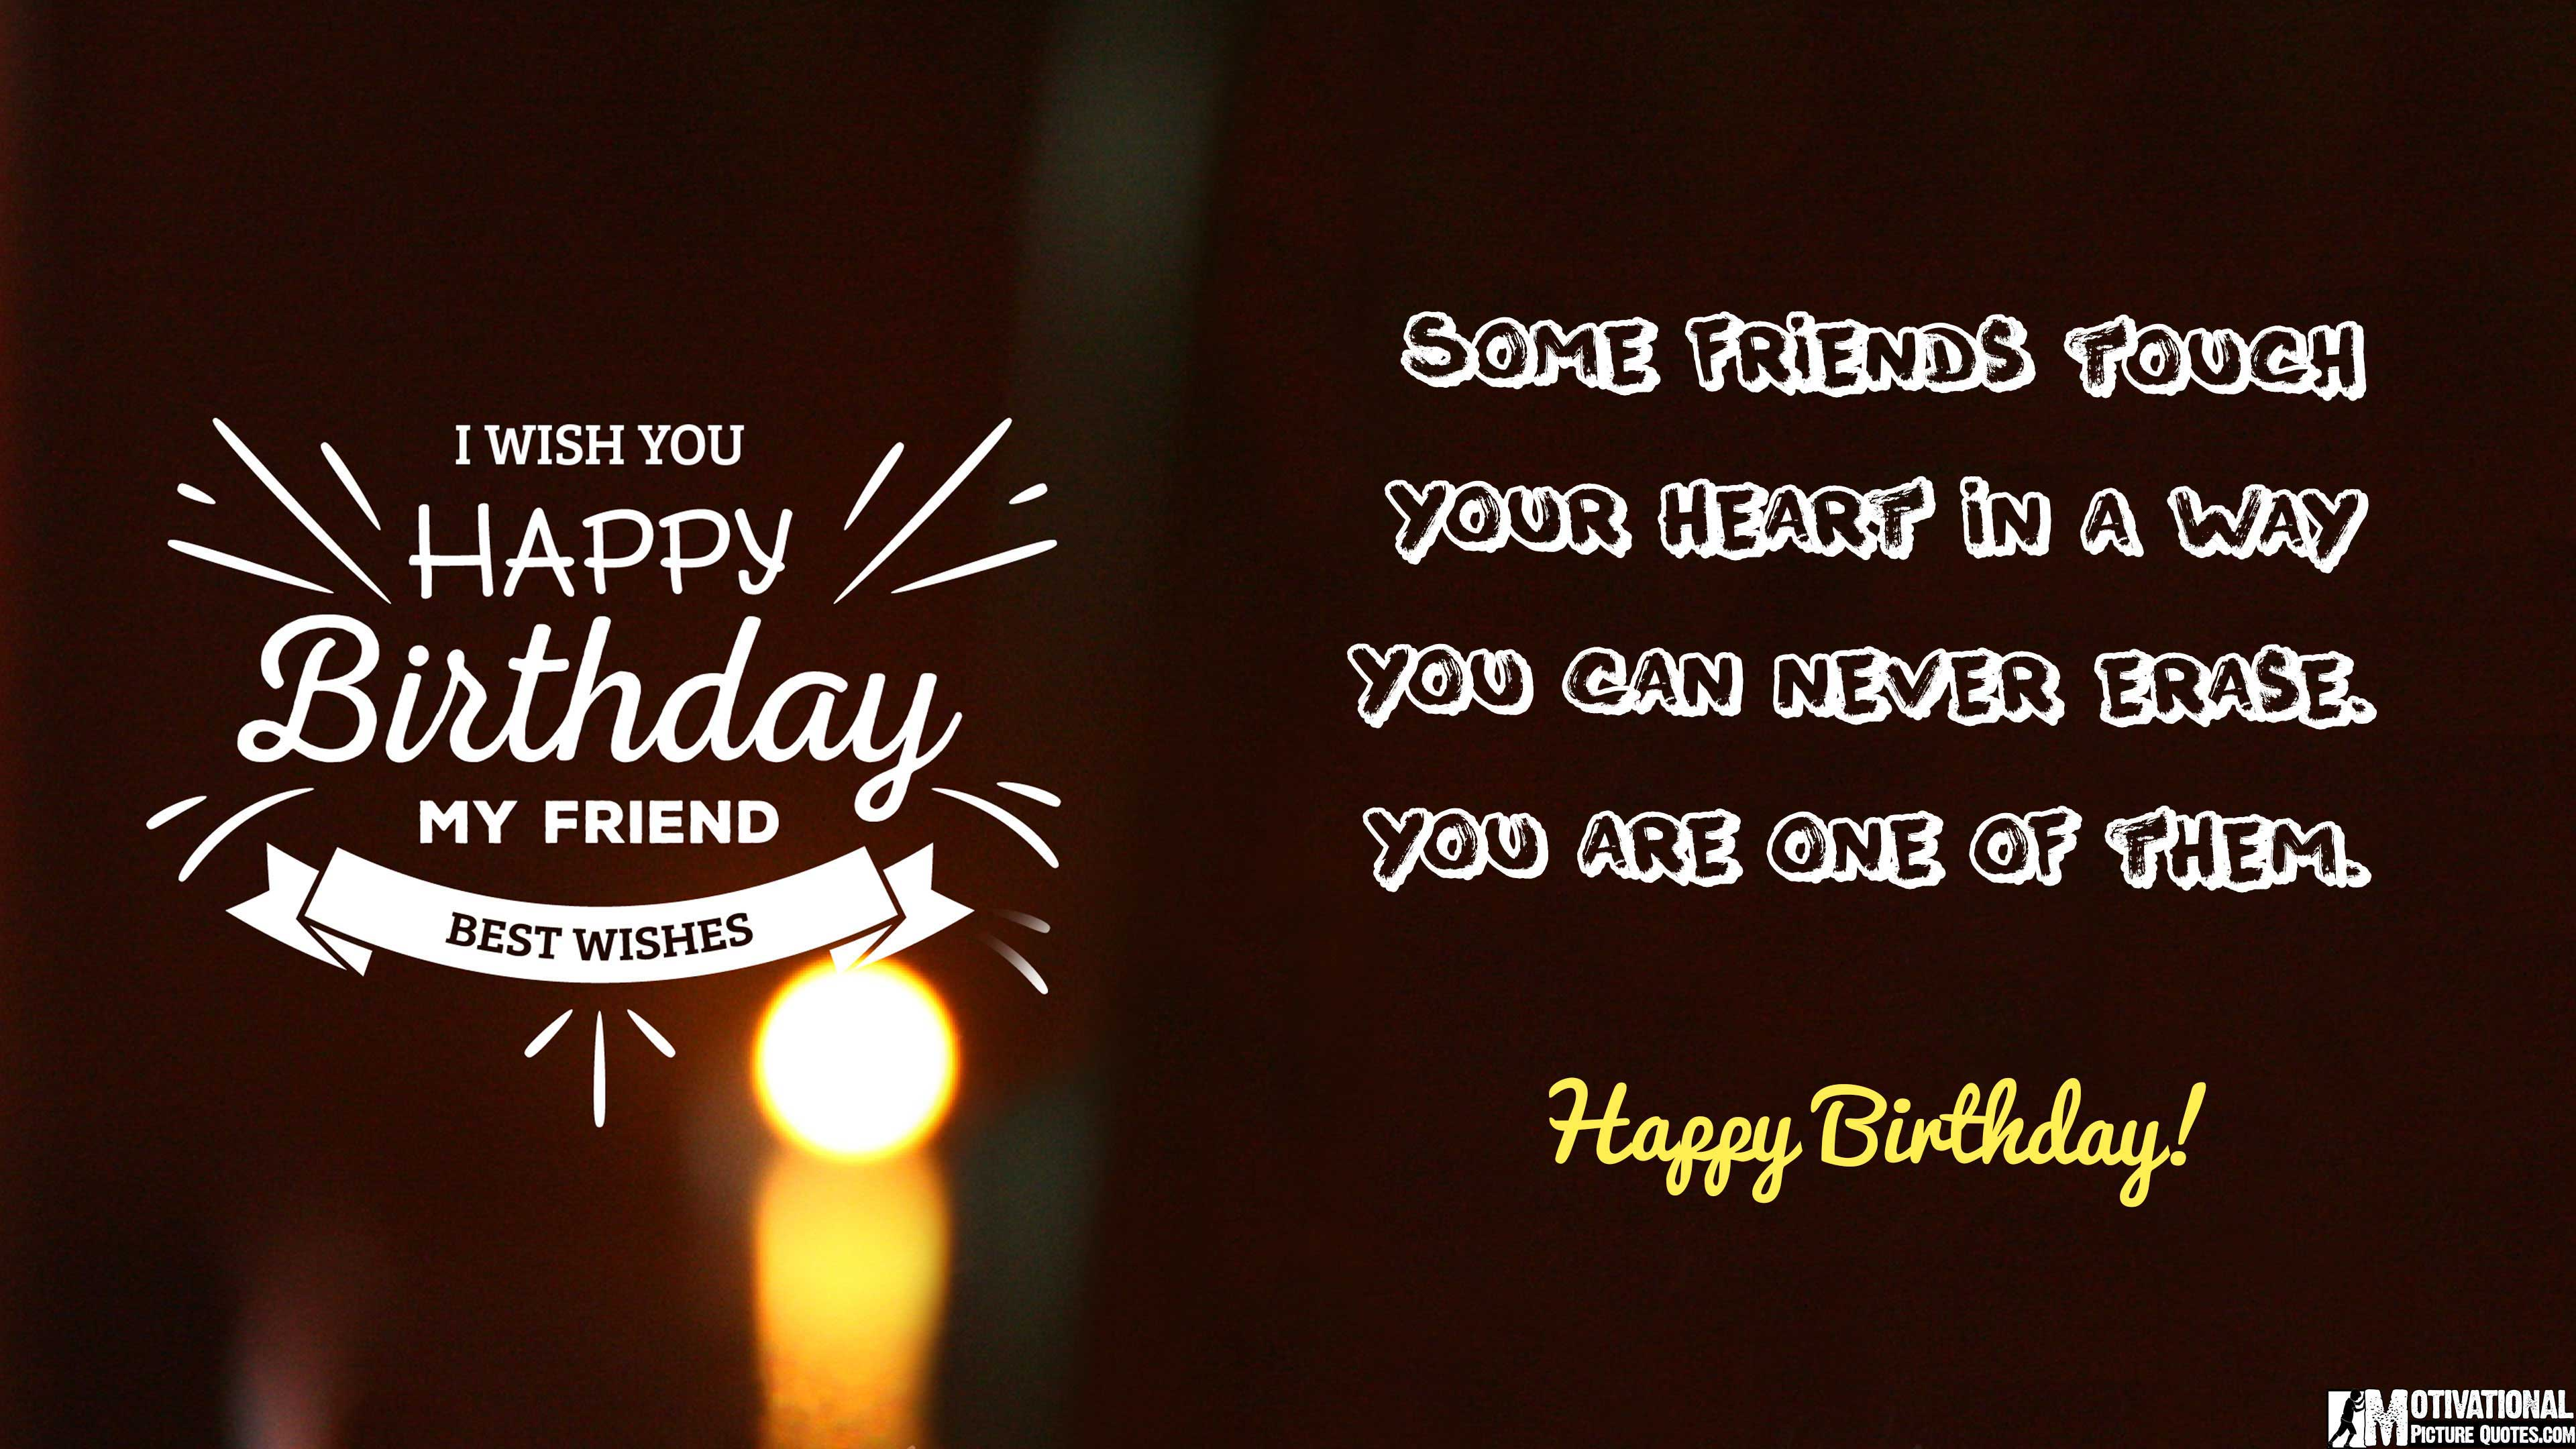 35 Inspirational Birthday Quotes Images – Birthday Greetings for a Friend Quotes